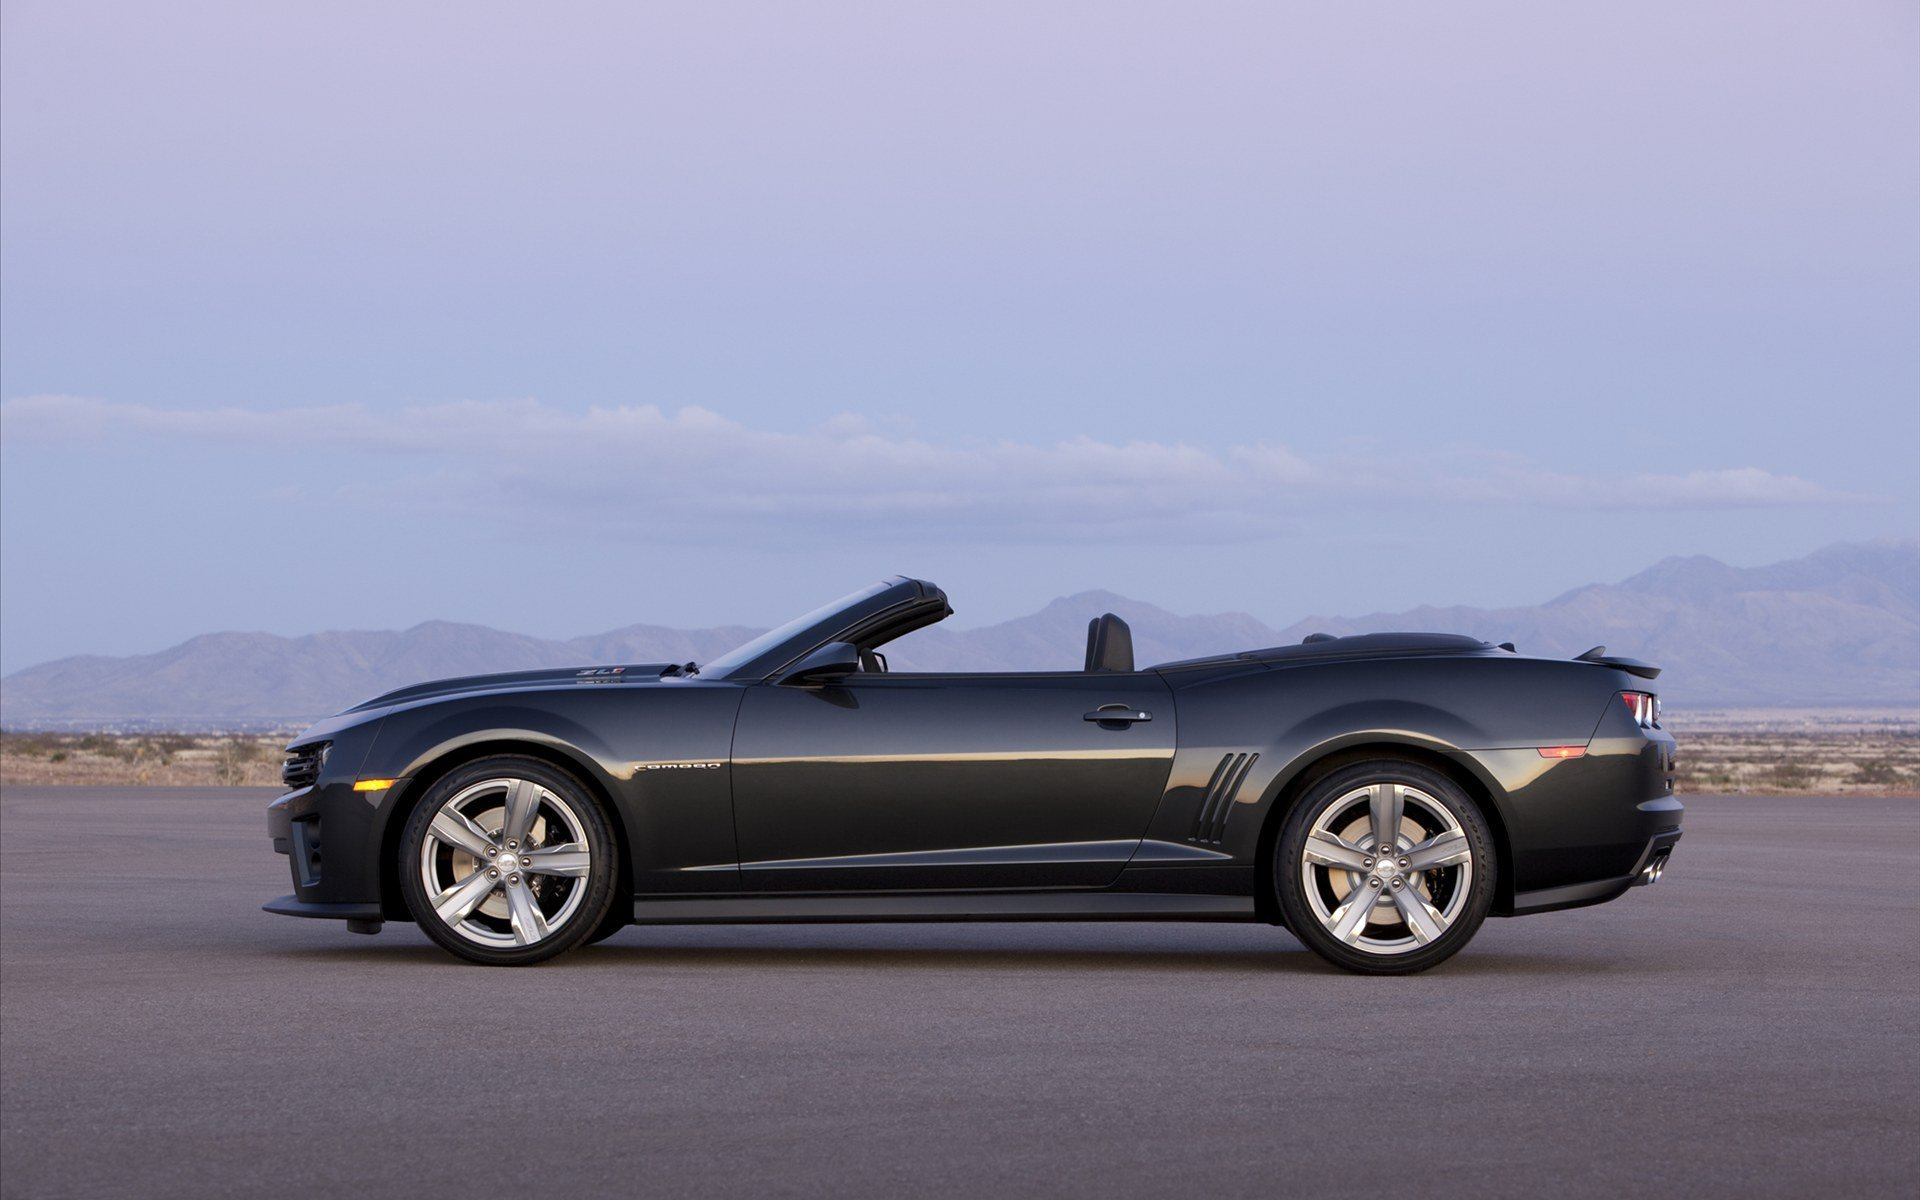 2013 Chevrolet Camaro ZL1 Convertible wallpaper 13087 1920x1200